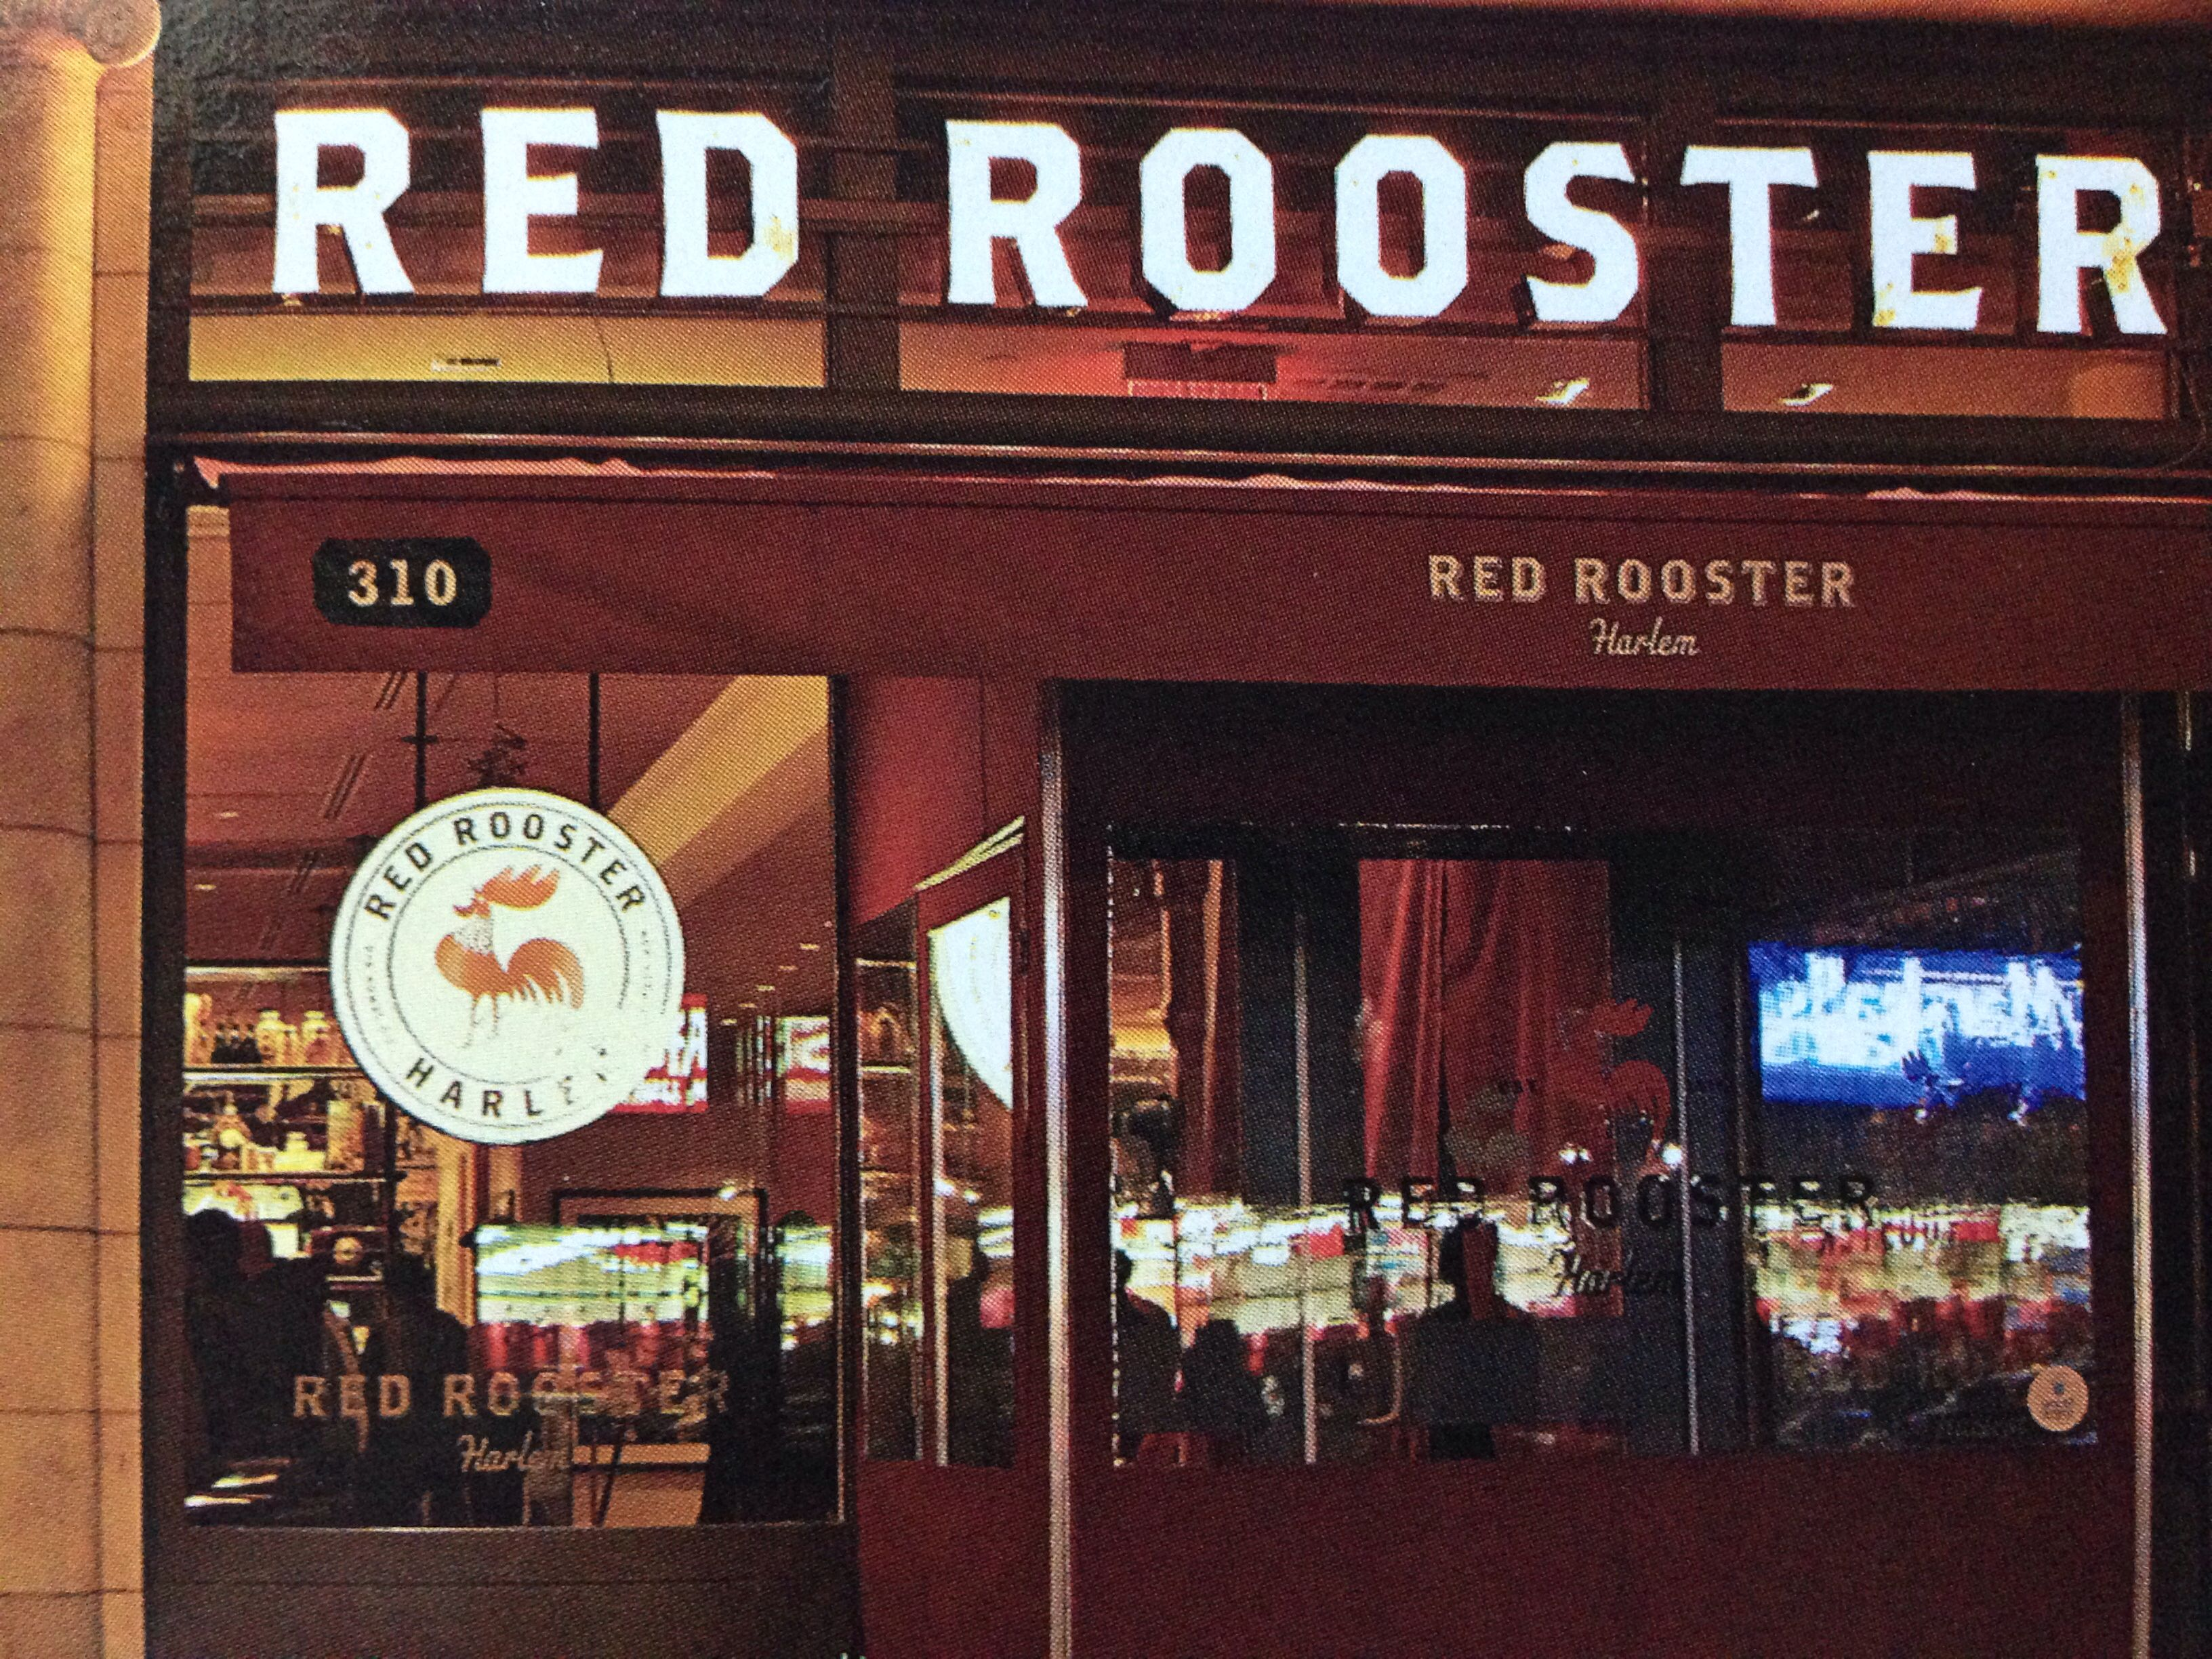 Great Brunch And Live Music At The Red Rooster 310 Lennox Ave Nyc Marcus Samuelsson S Harlem Restau Harlem Restaurants Nyc Trip Ferry Building San Francisco